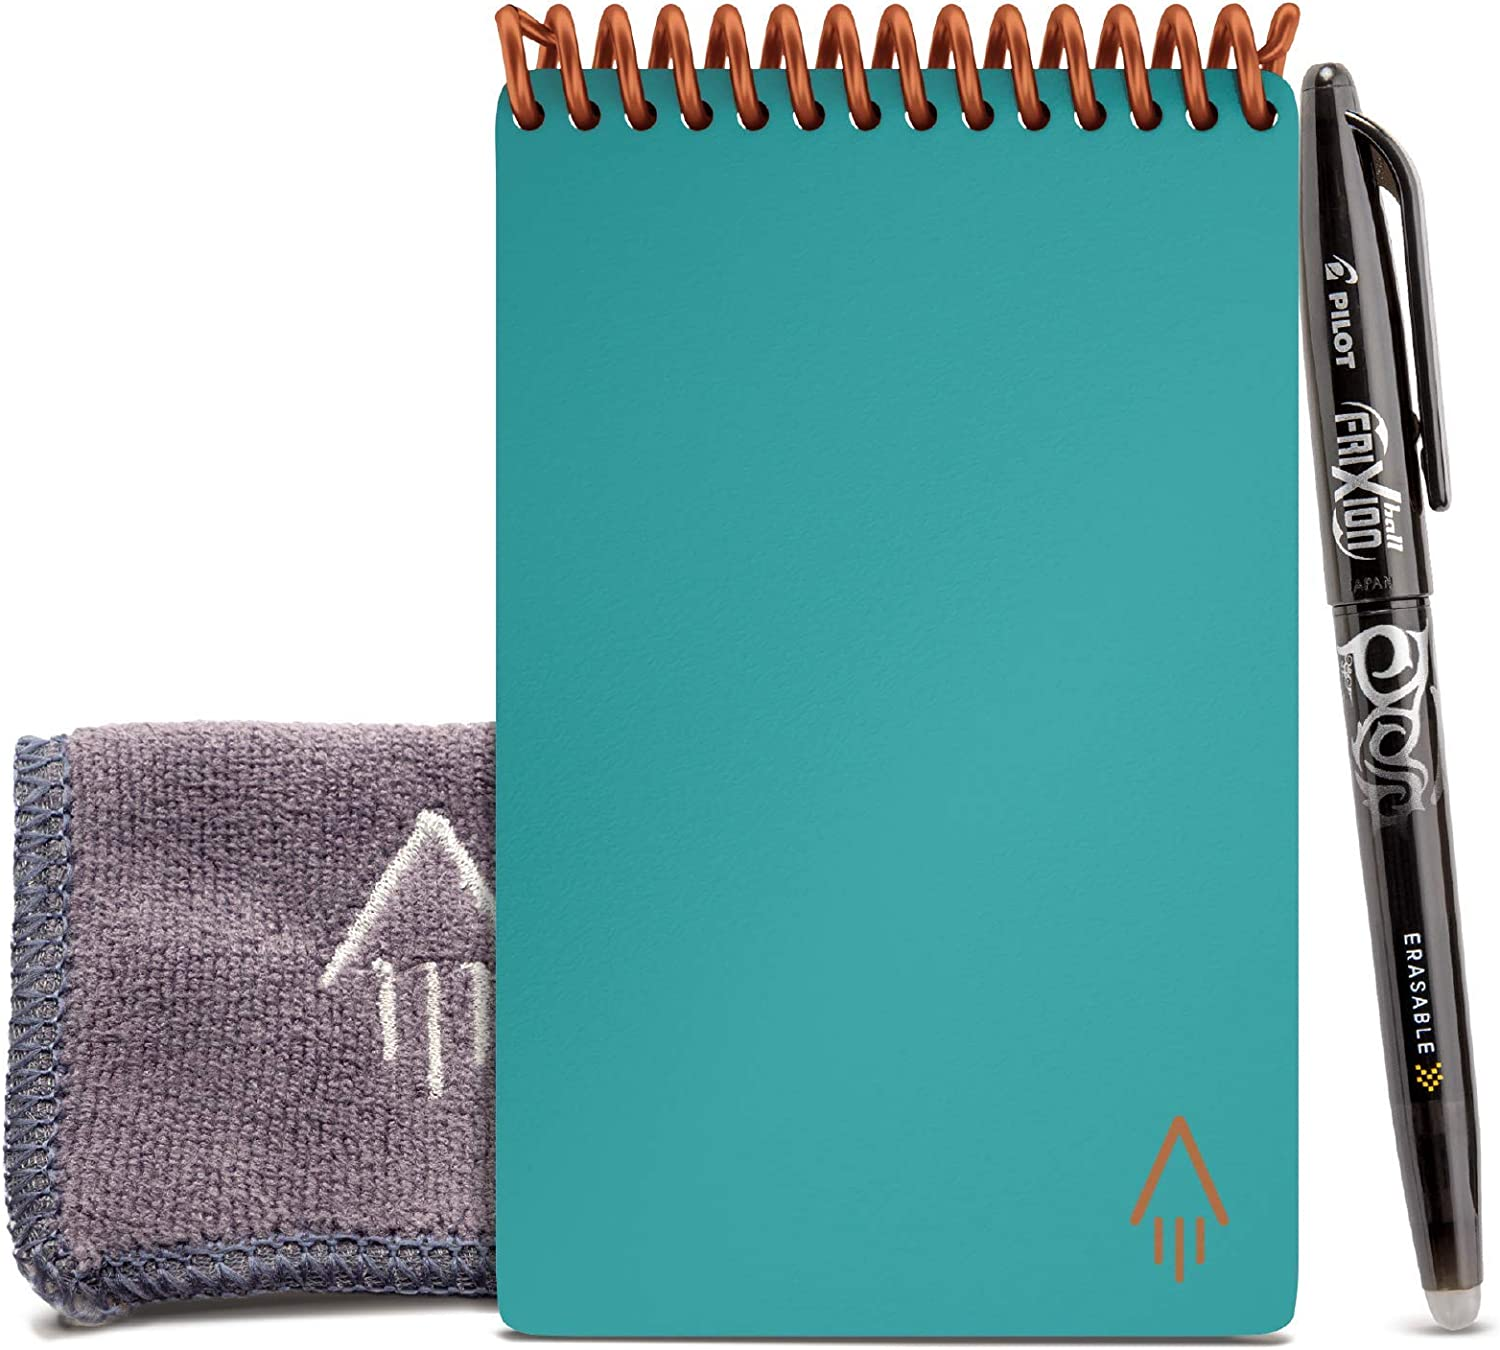 Beacon Orange Cover Dot-Grid Eco-Friendly Notebook with 1 Pilot Frixion Pen /& 1 Microfiber Cloth Included 3.5 x 5.5 Rocketbook Smart Reusable Notebook Mini Size